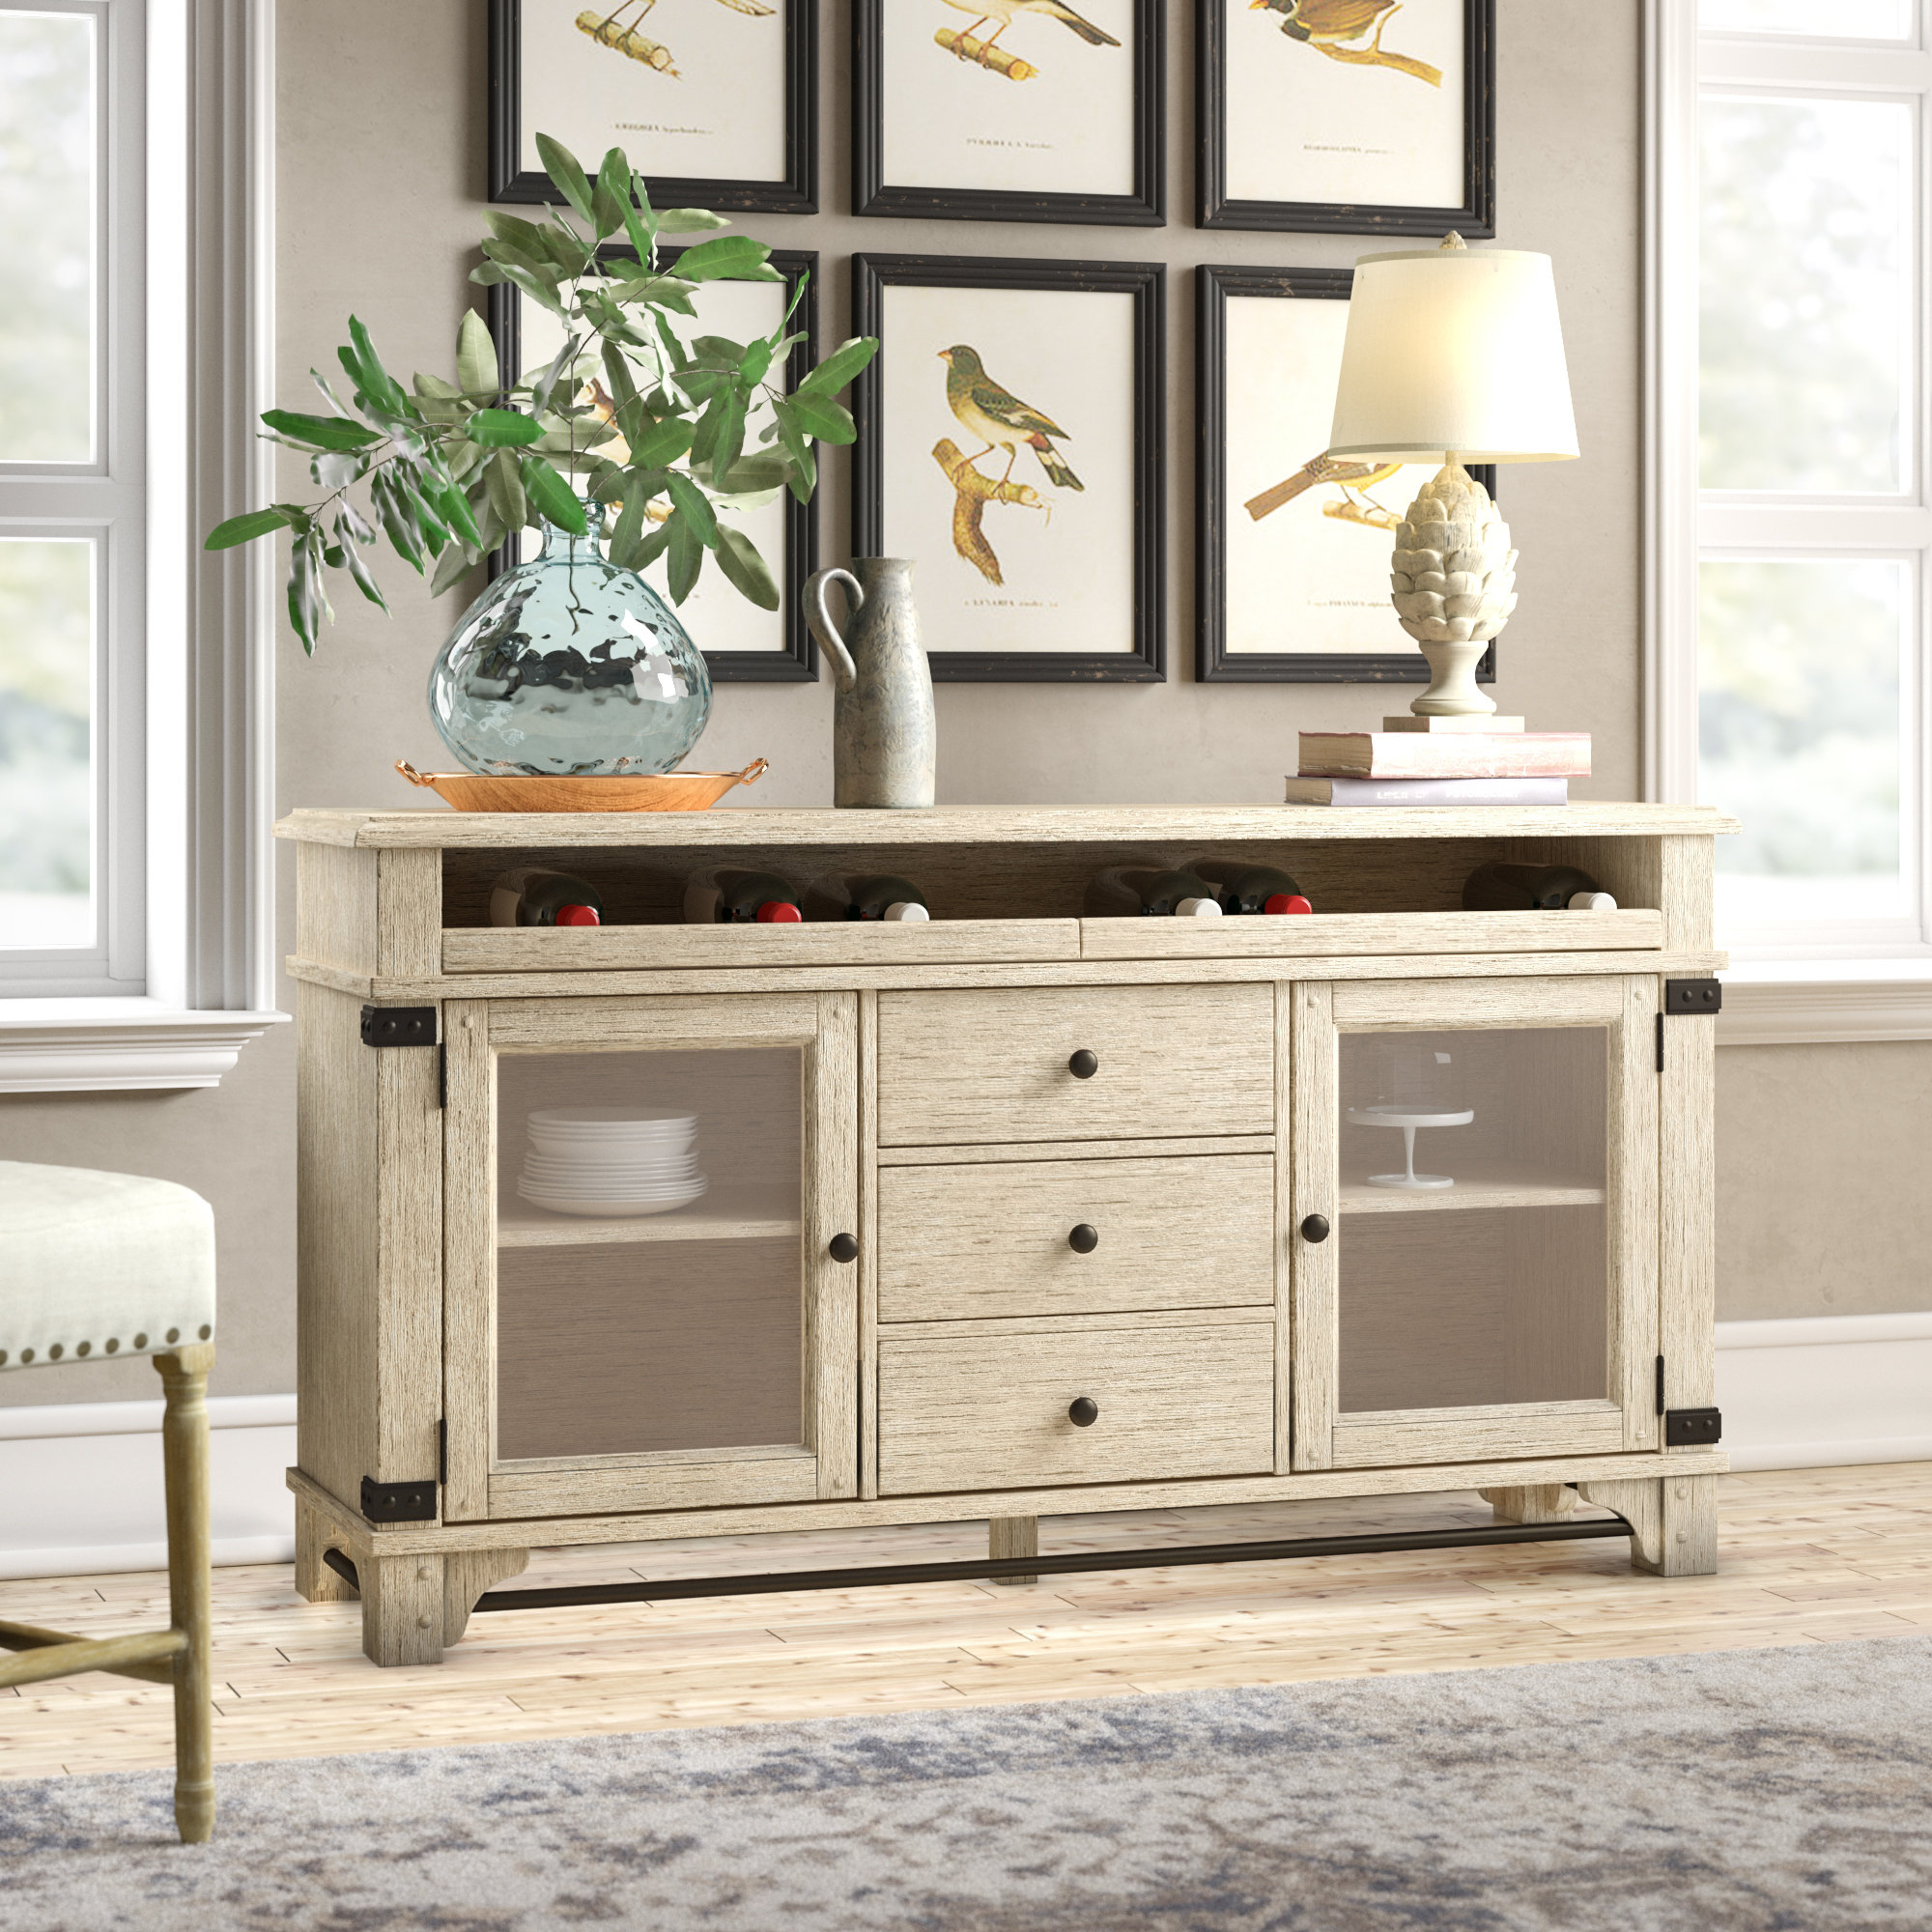 Piedmont Charlisa Sideboard Pertaining To Cazenovia Charnley Sideboards (View 19 of 30)